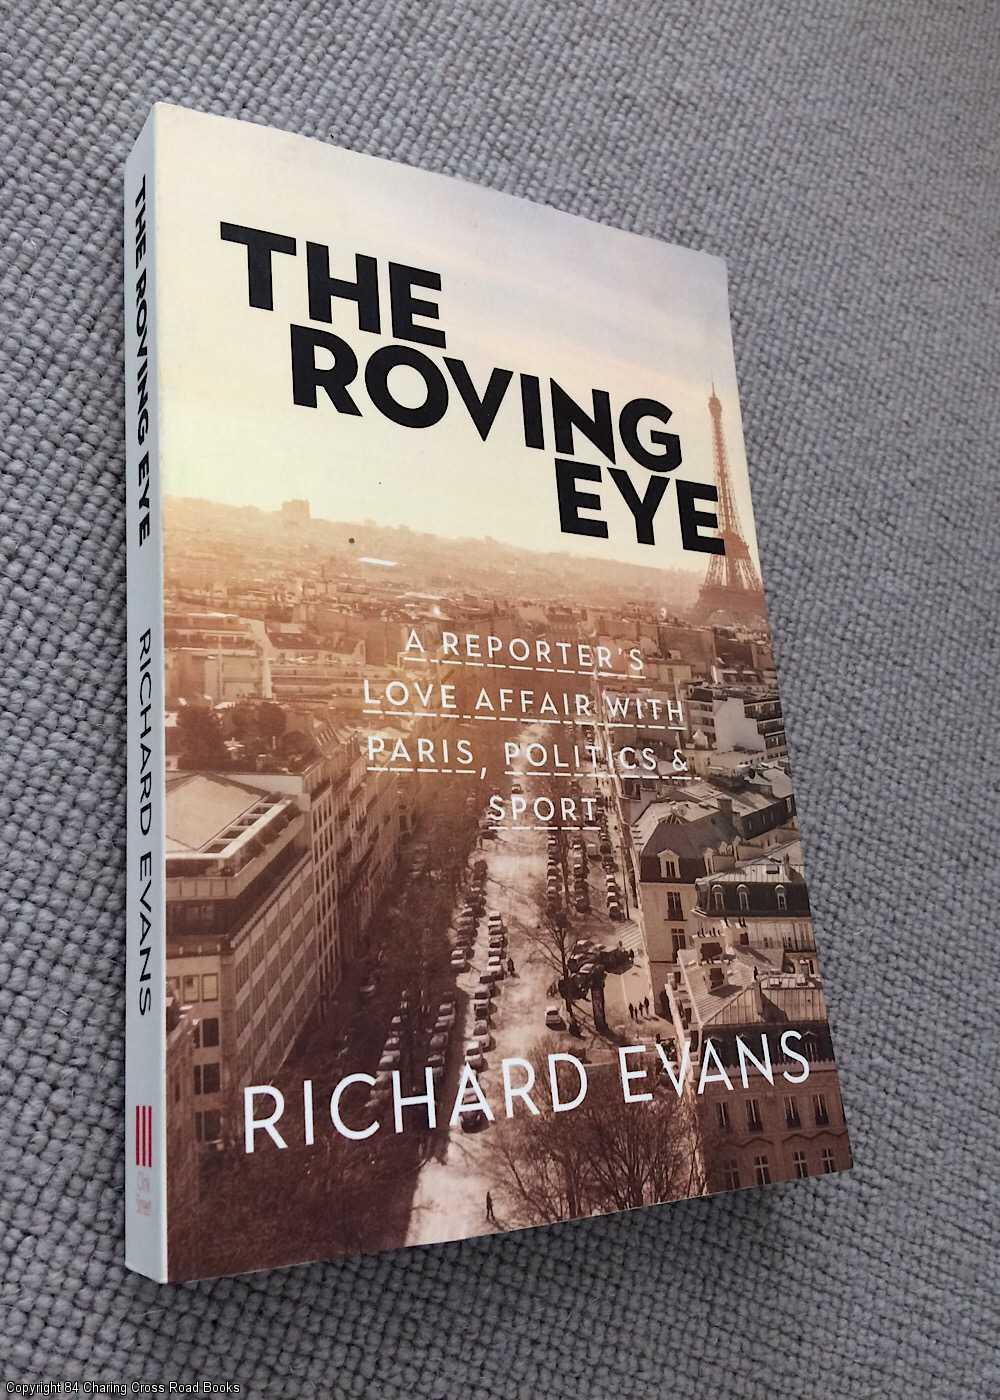 EVANS, RICHARD - The Roving Eye: A Reporter's Love Affair with Paris, Politics & Sport